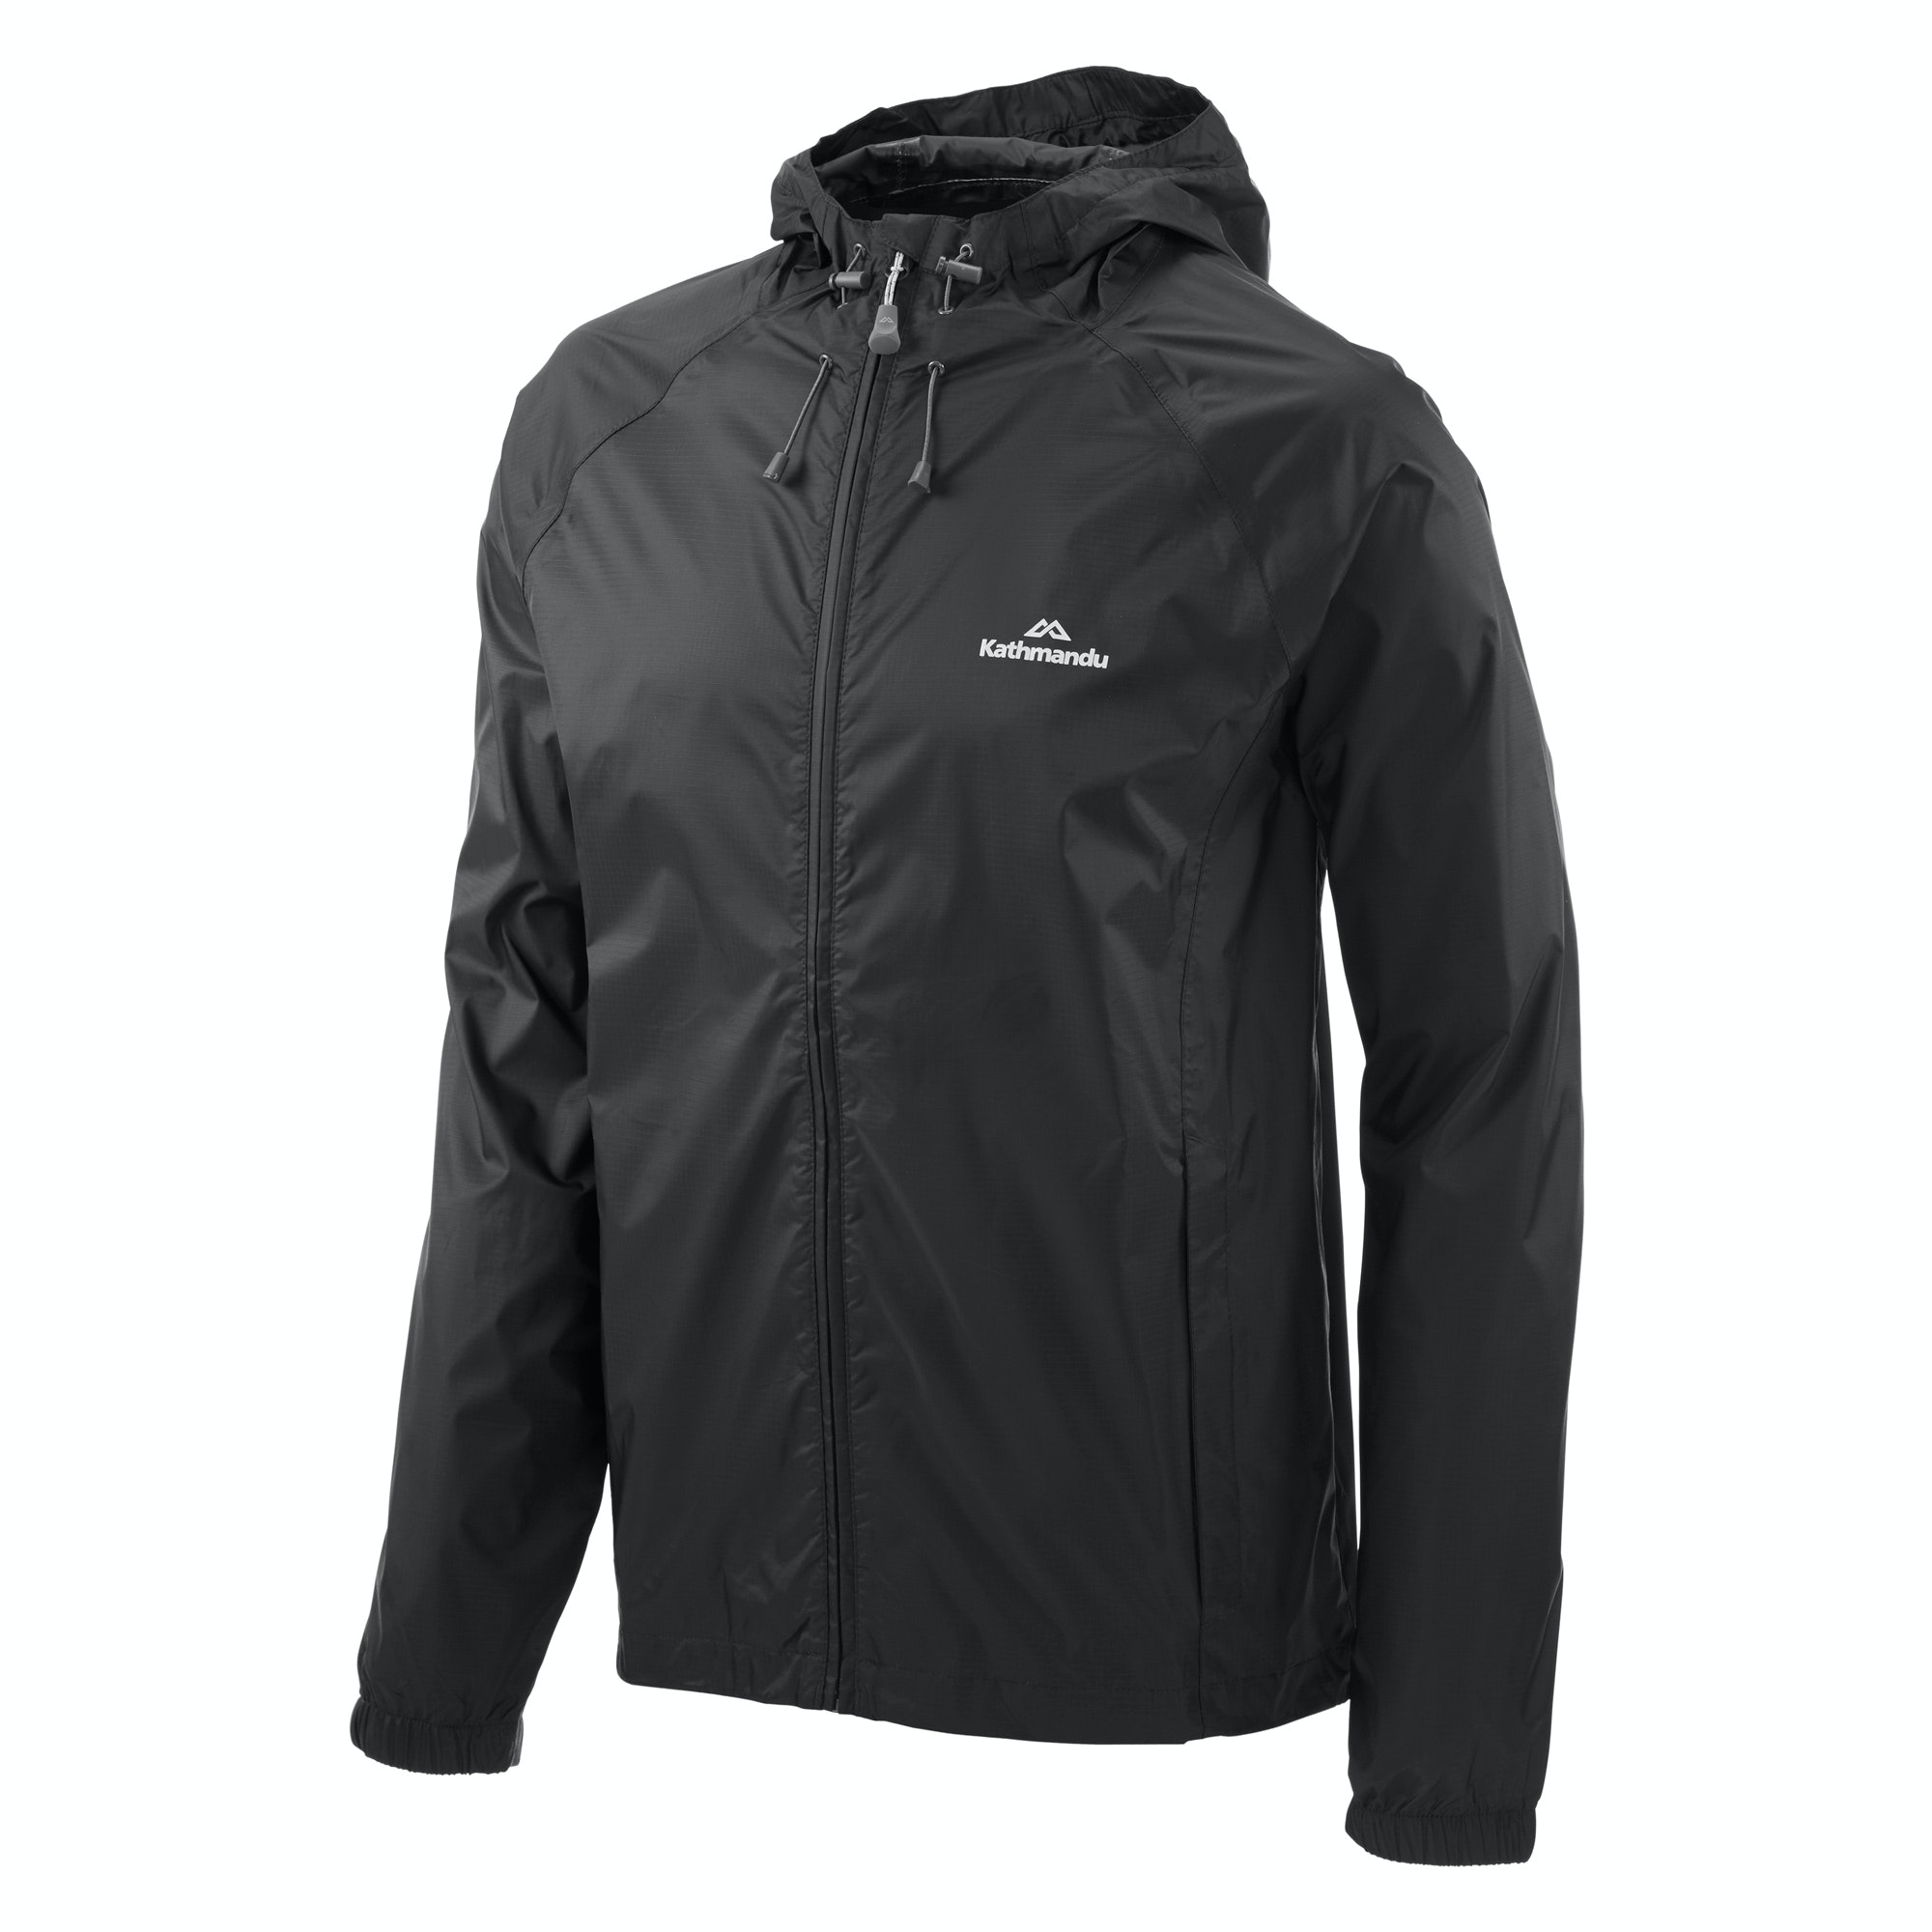 Pocket-it Men's Rain Jacket v3 - Storm Blue